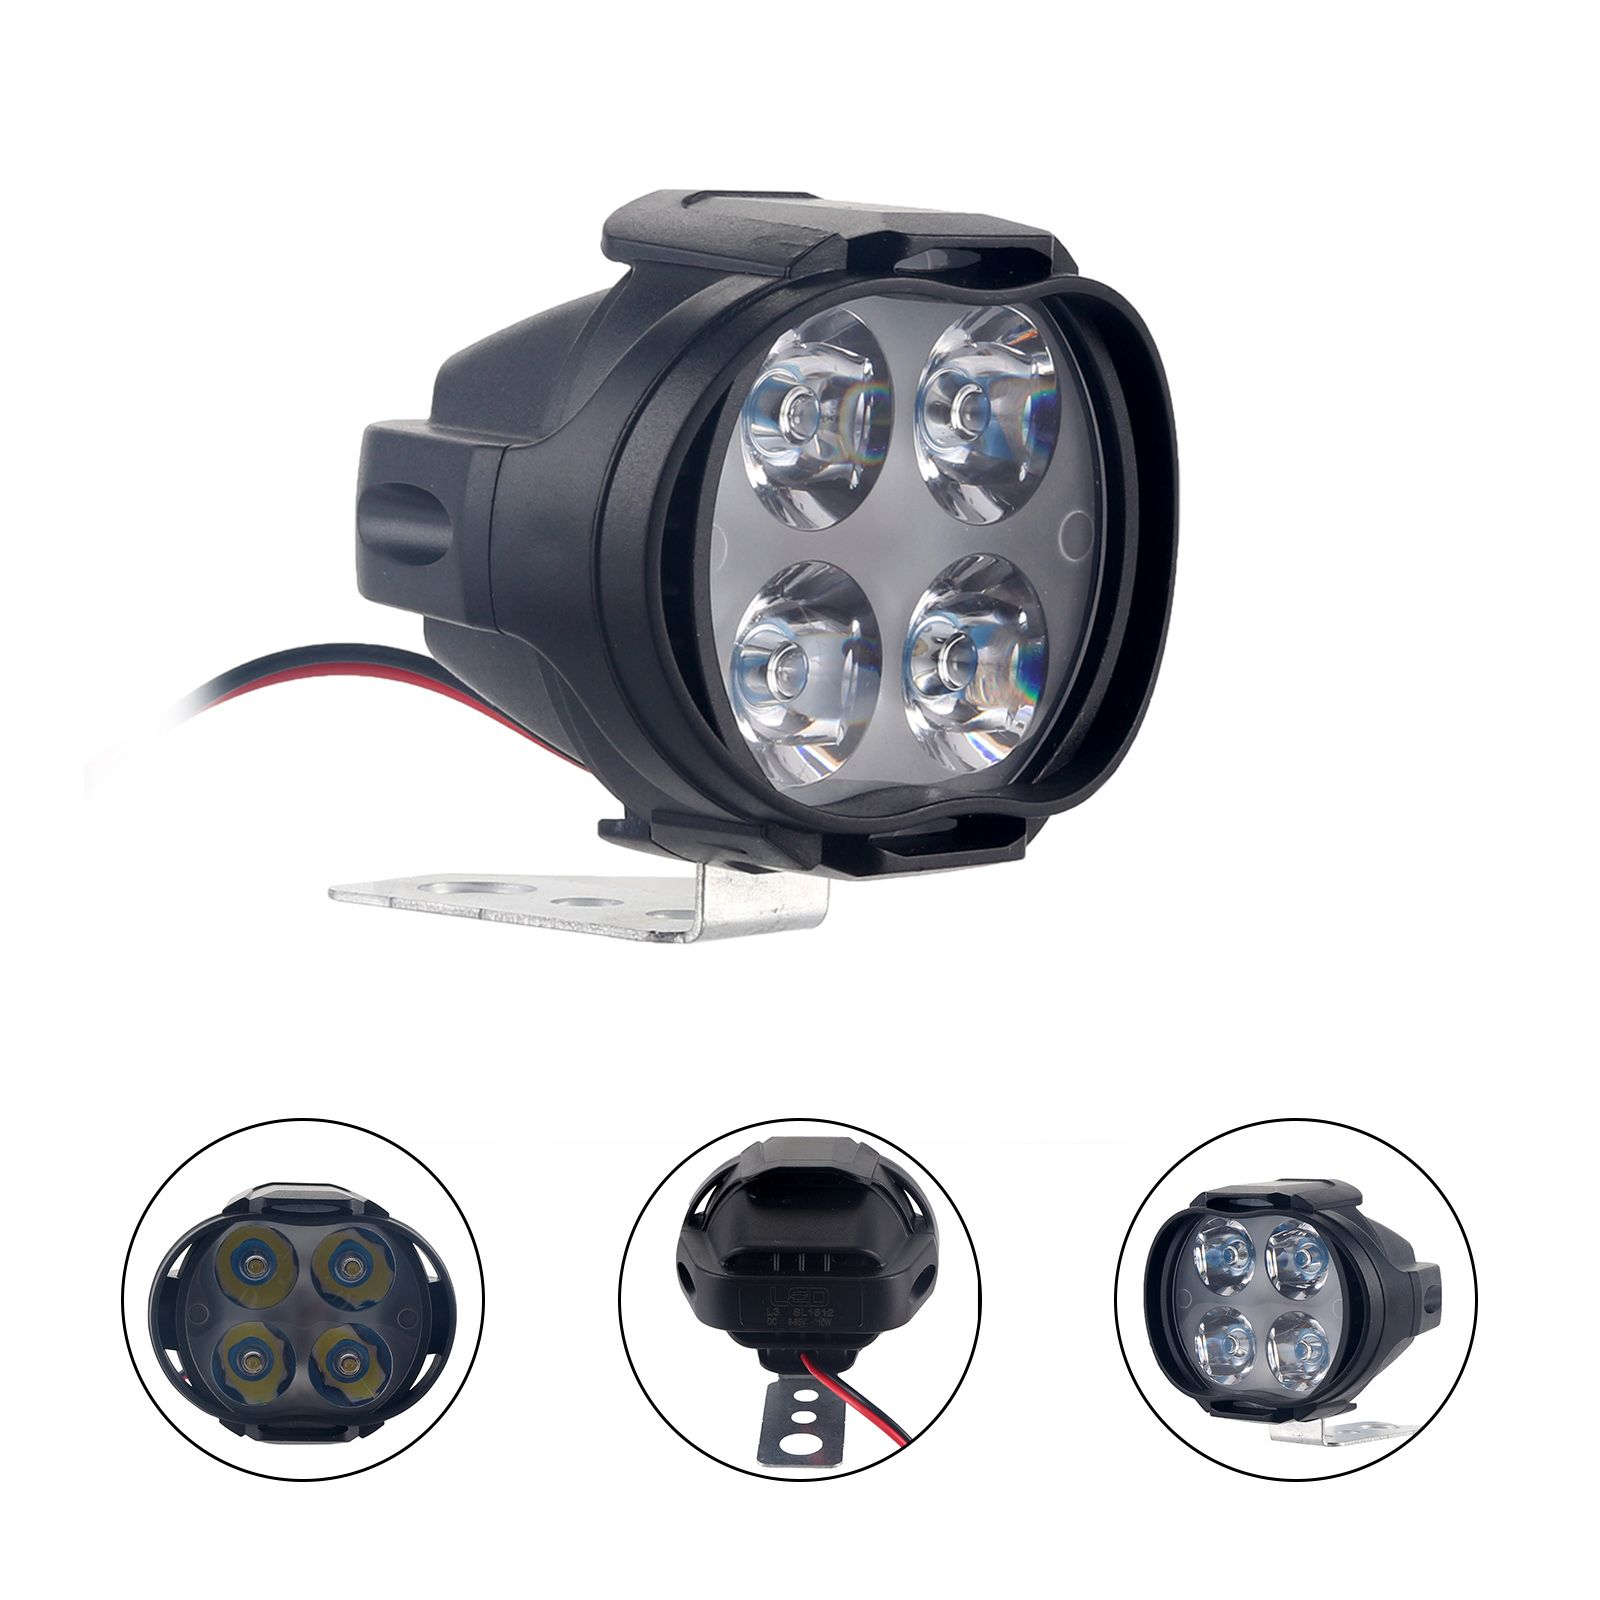 High Power 12w Super Bright Motorcycle Led Light Fog Spot White Headlight Working Light 12v Deco Moto Led Moto